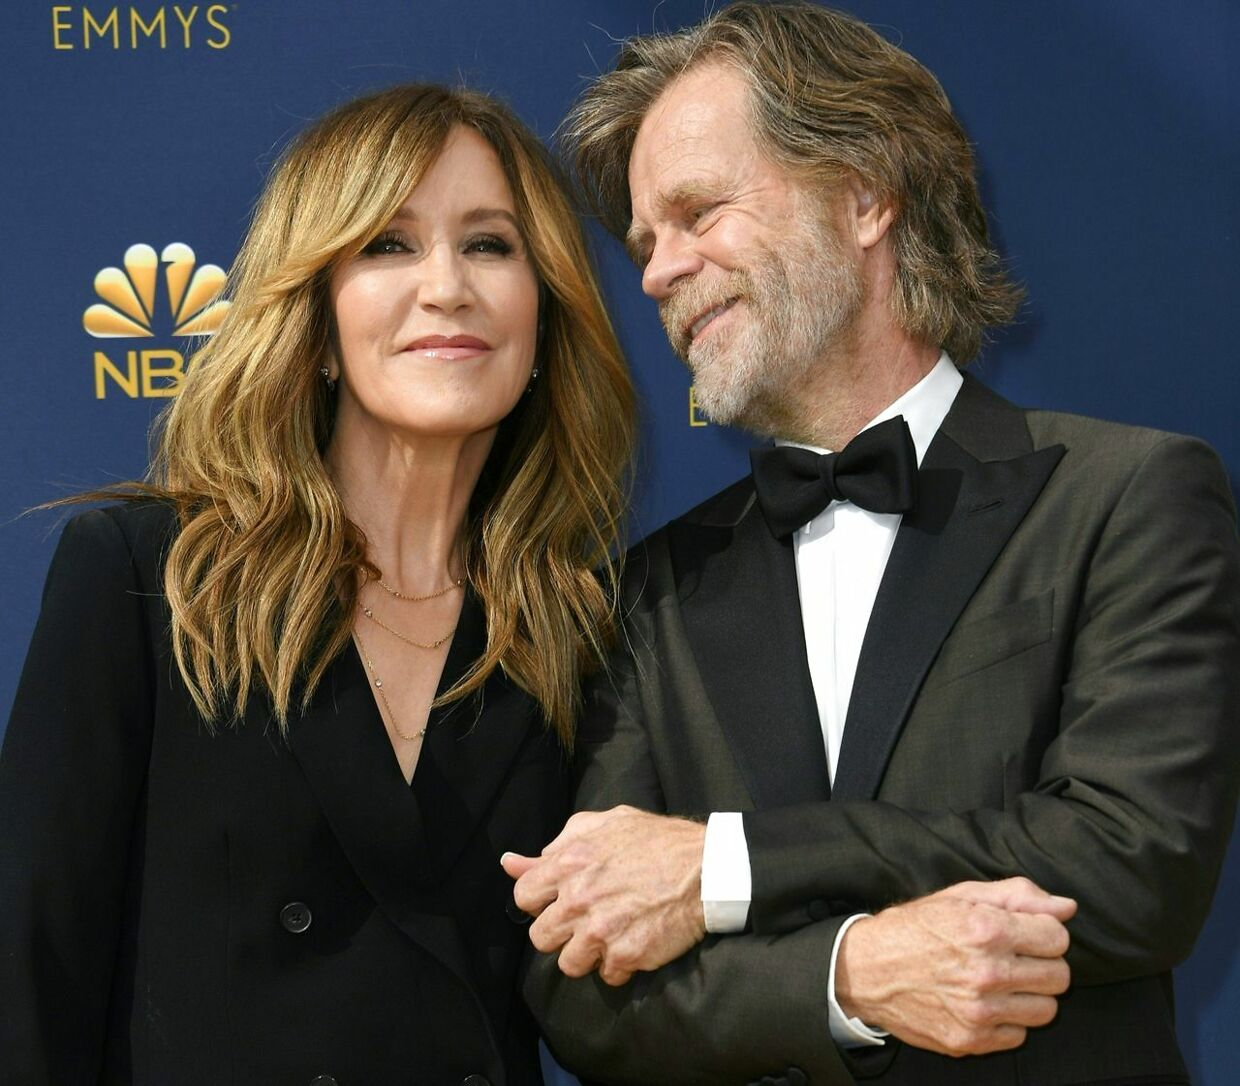 Felicity Huffman og William H. Macy til Emma Awards i 2018.